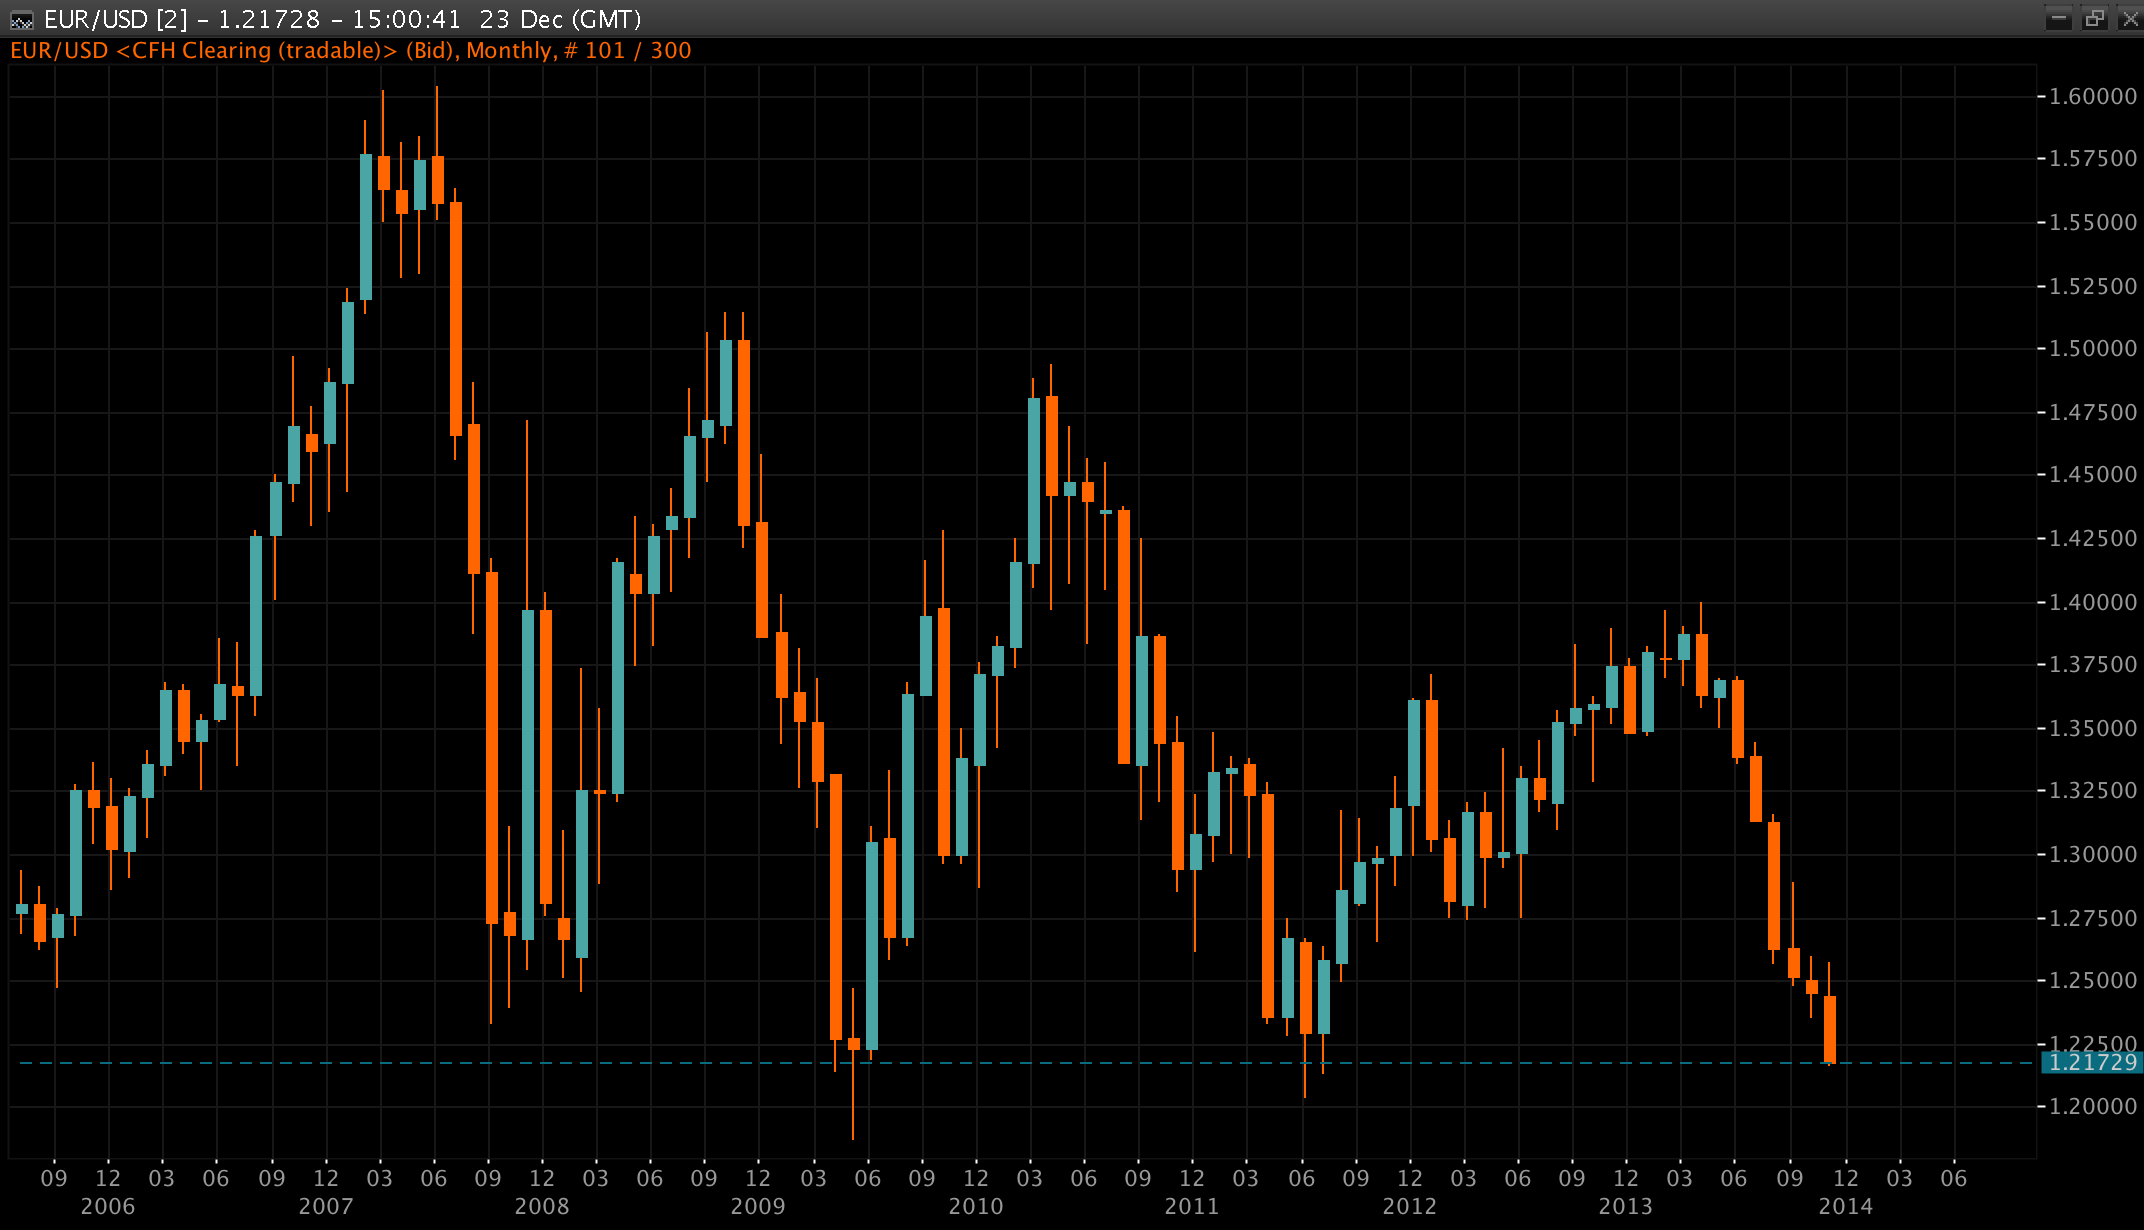 Euro just 2 cents above multiyear lows, Monthly Chart